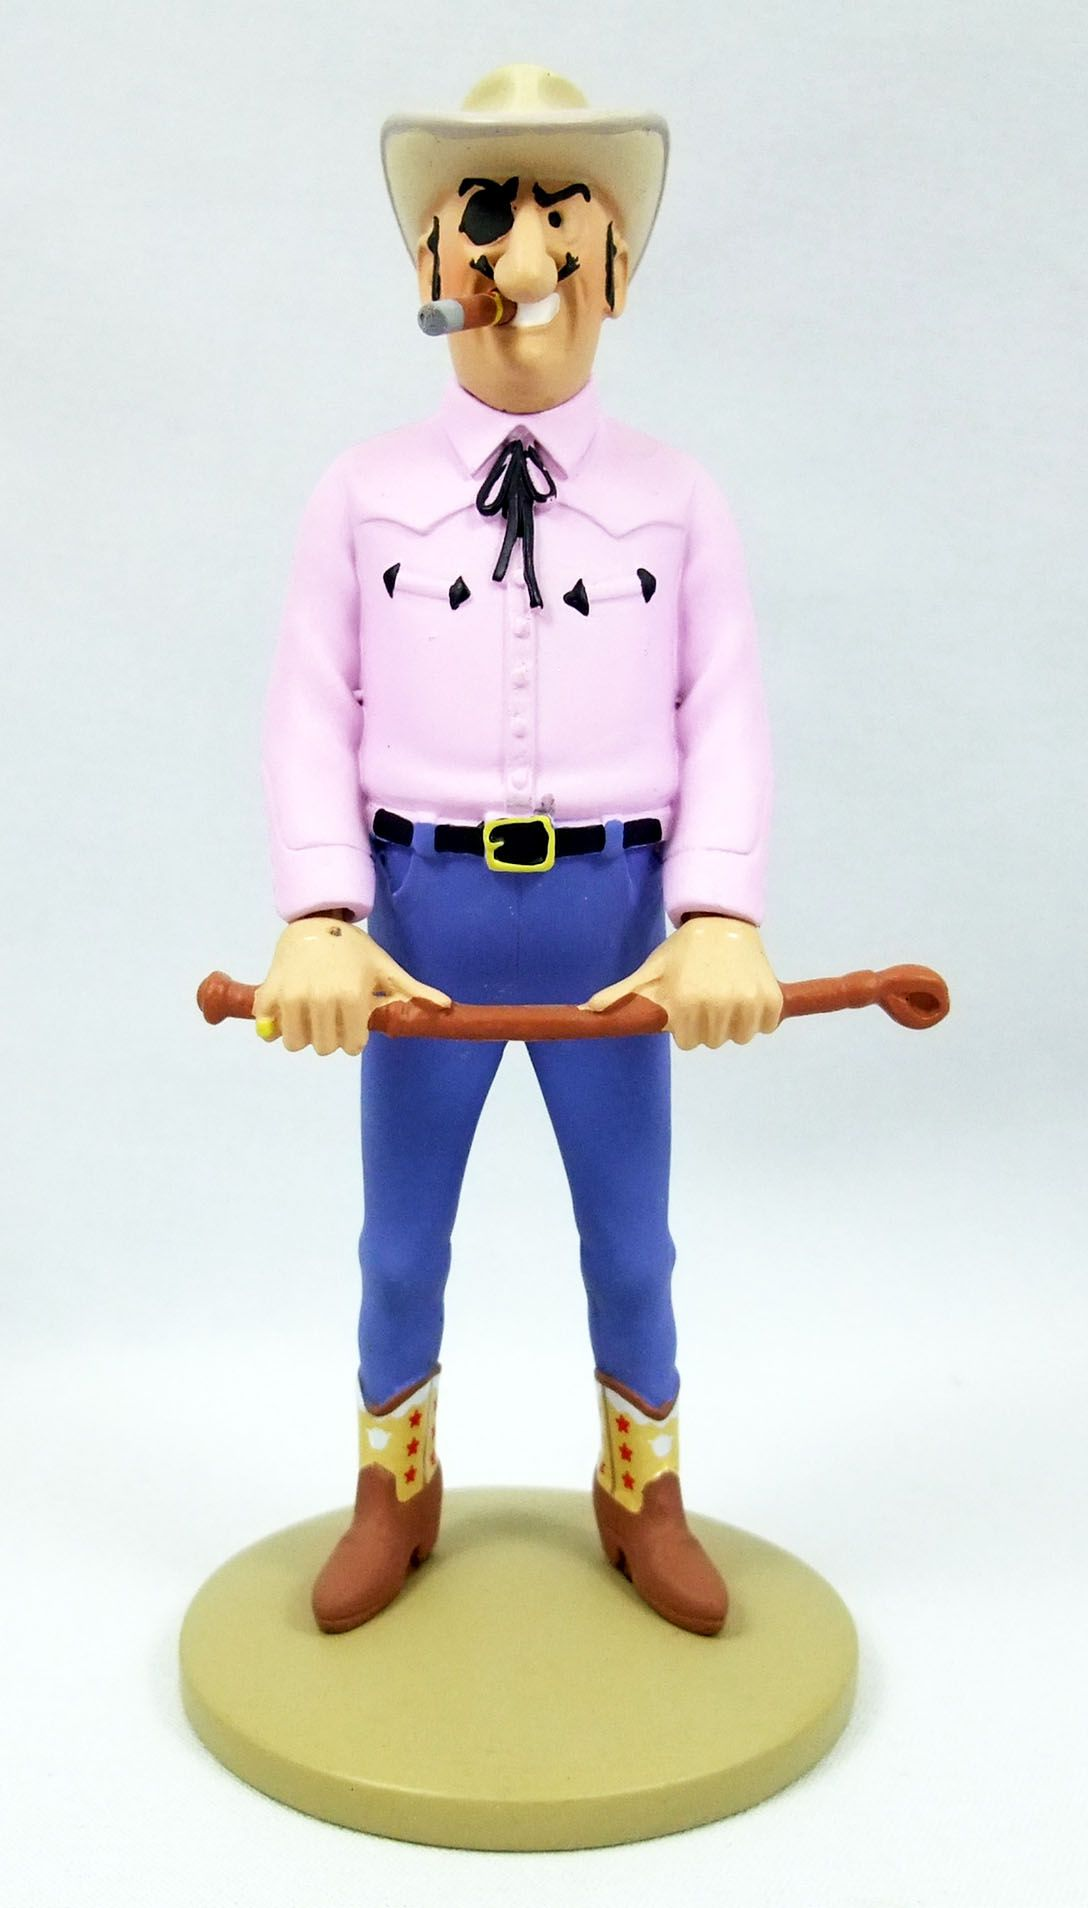 Tintin - Collection Officielle des Figurines Moulinsart - N°045 Rastapopoulos